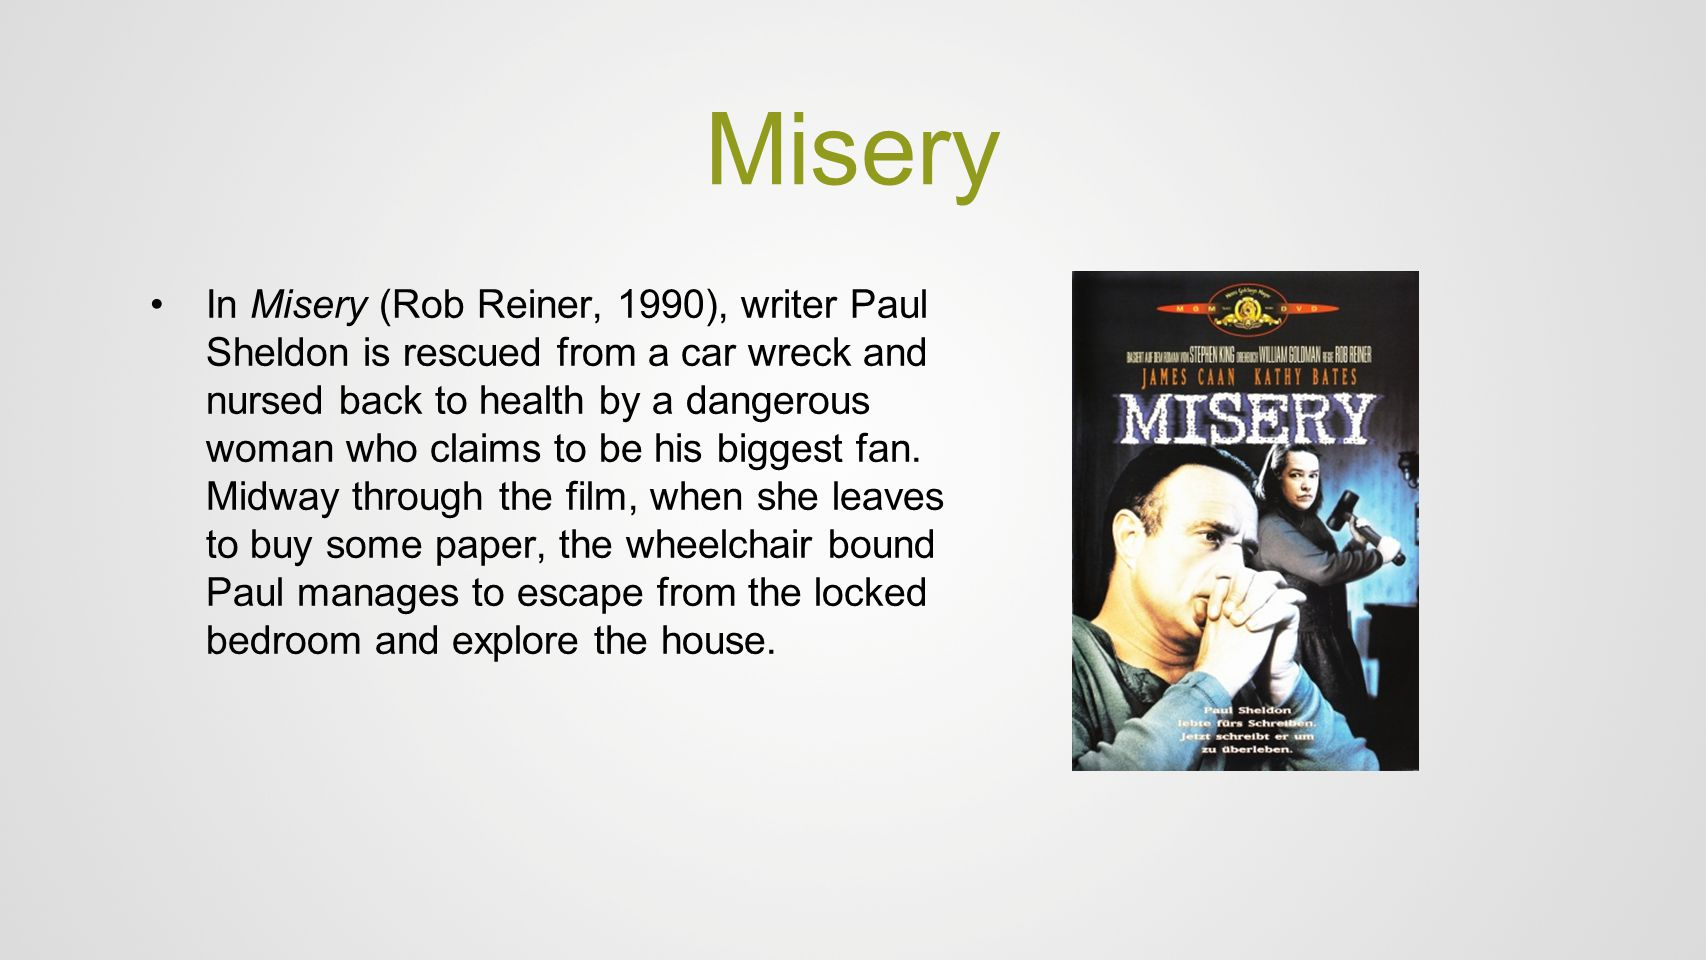 Misery In Misery (Rob Reiner, 1990), writer Paul Sheldon is rescued from a car wreck and nursed back to health by a dangerous woman who claims to be h